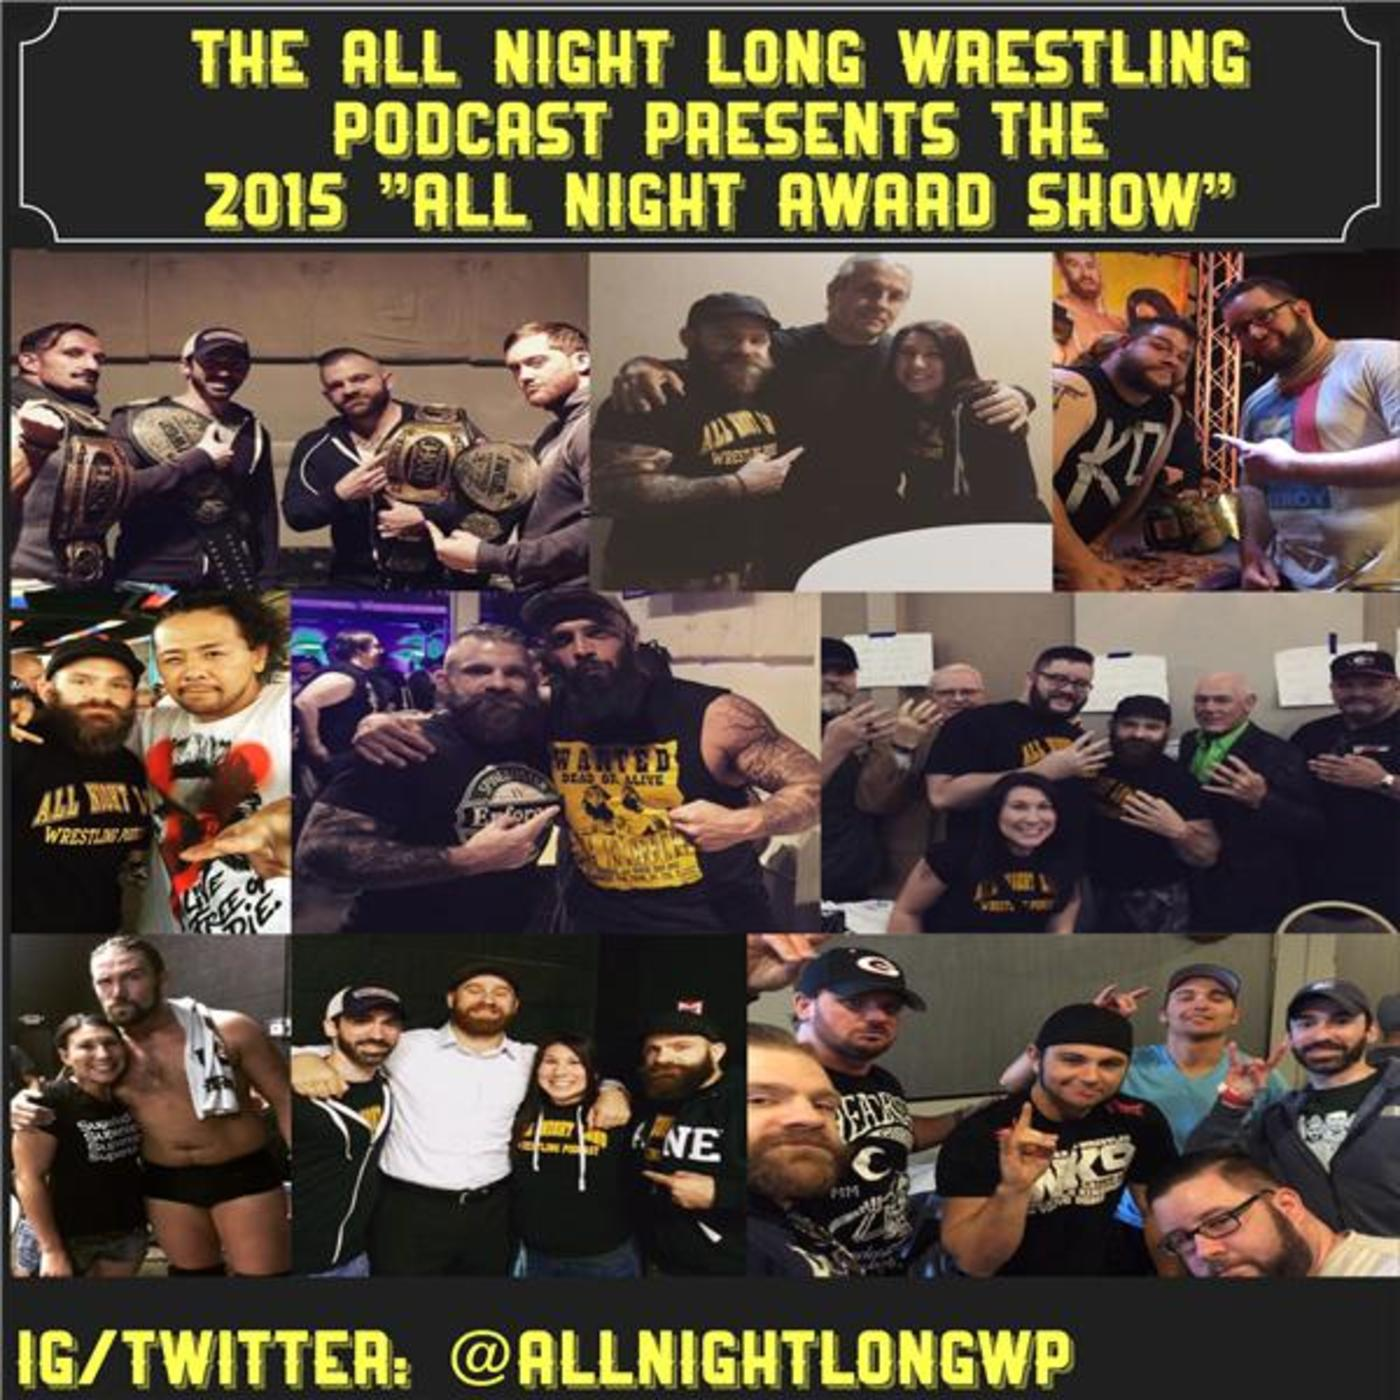 All Night Long Wrestling Podcast